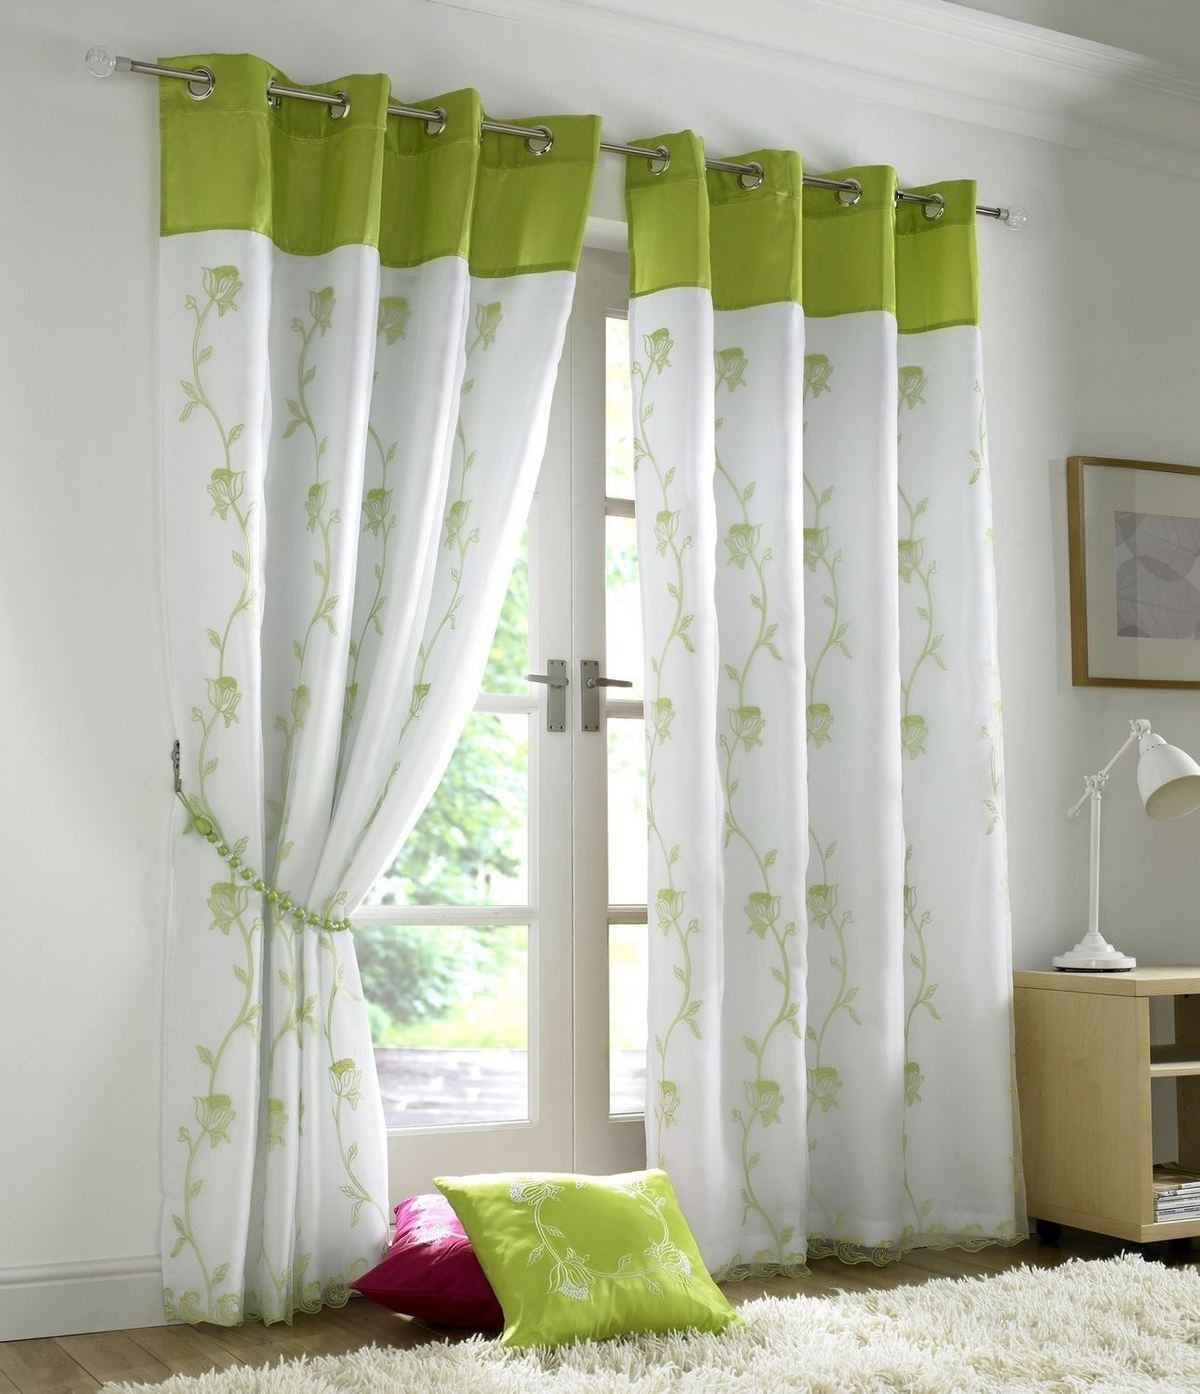 Pair Faux Silk Curtain Ring Top Eyelet Fully Lined Super Soft Ready Made Bedroom